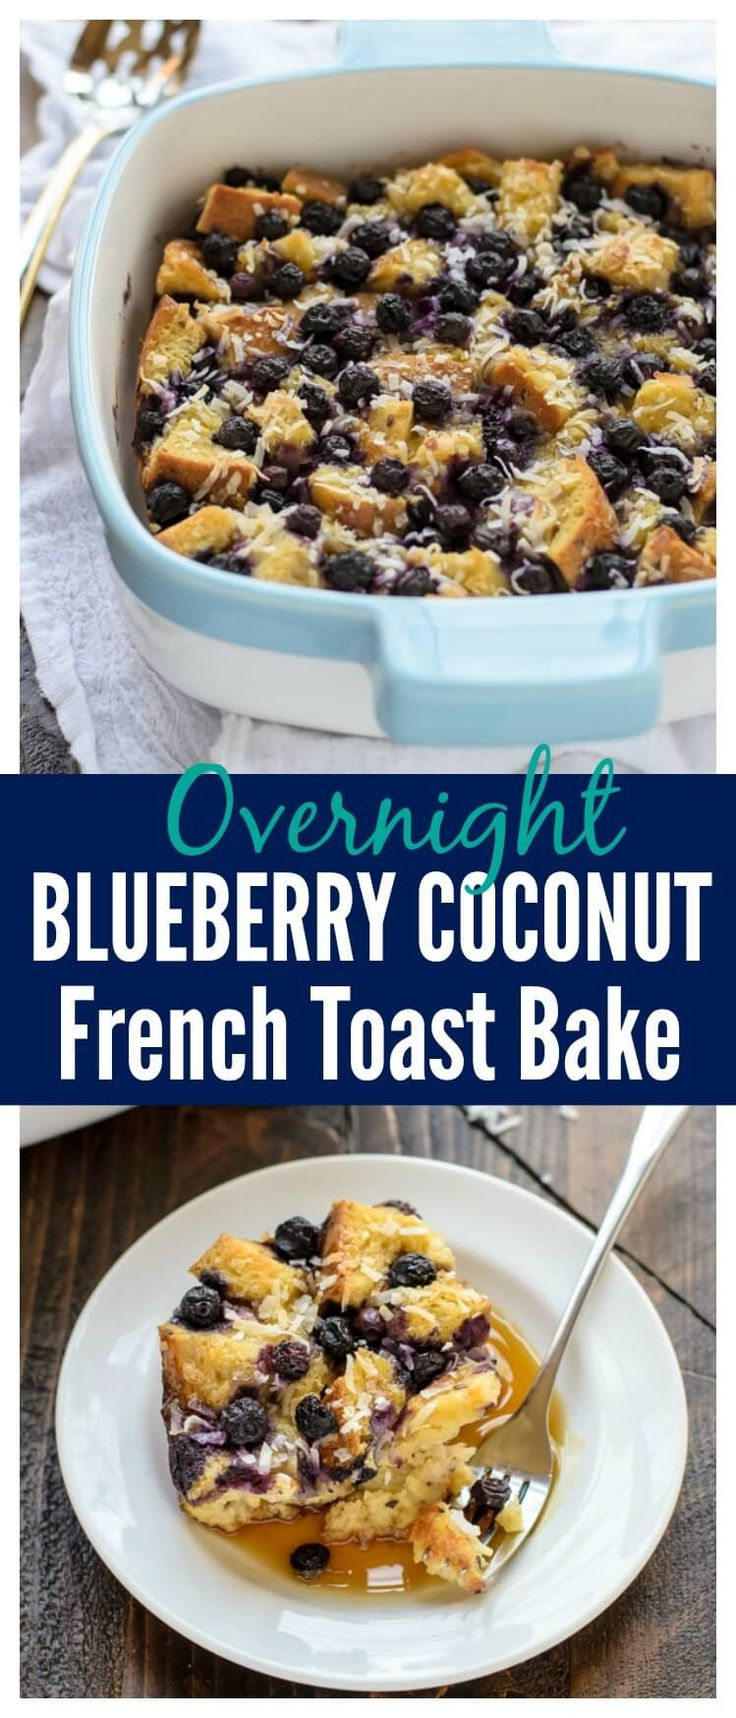 Best cooked French toast that is overnight Easy breakfast casserole recipe